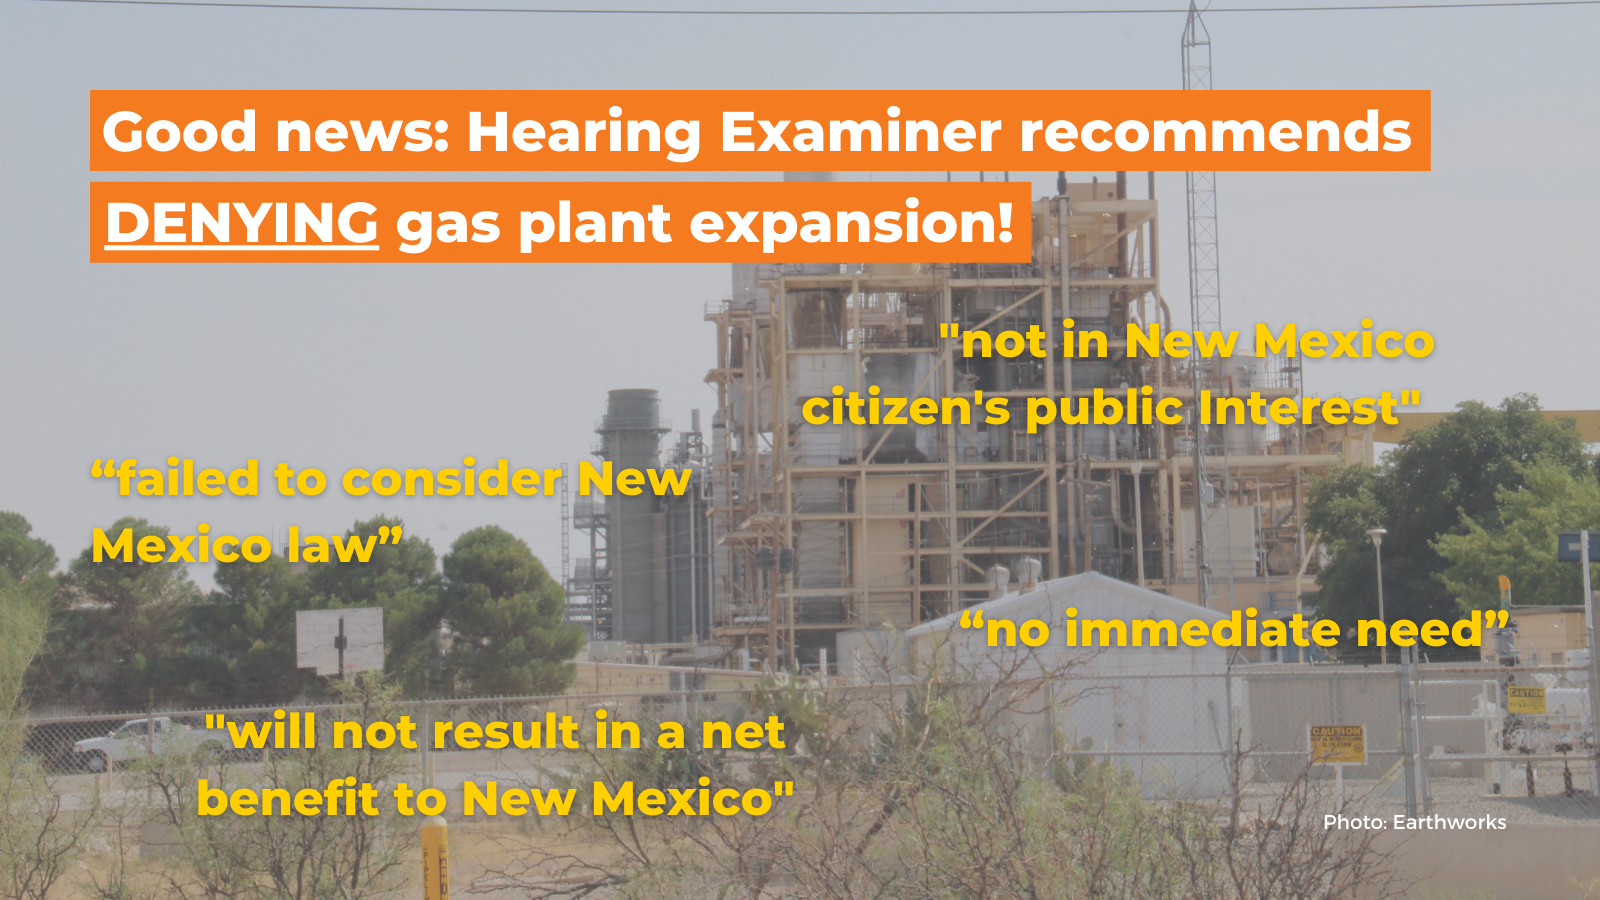 Good news on gas plant expansion